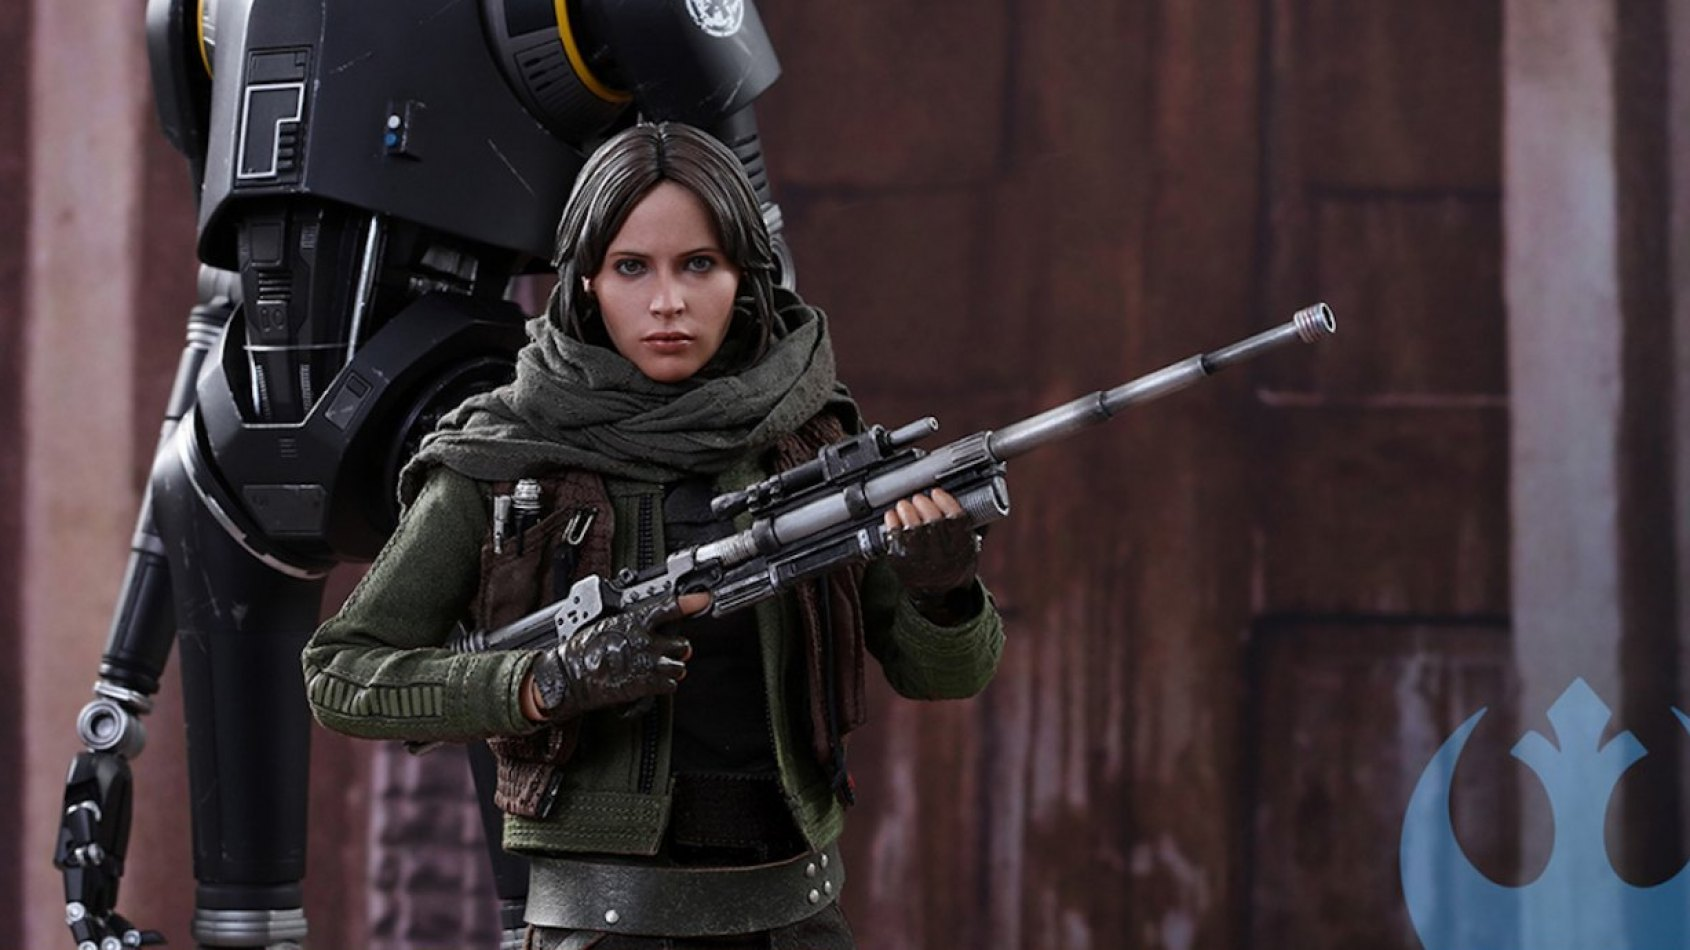 Hot Toys Sixth Scale Figures: Jyn Erso